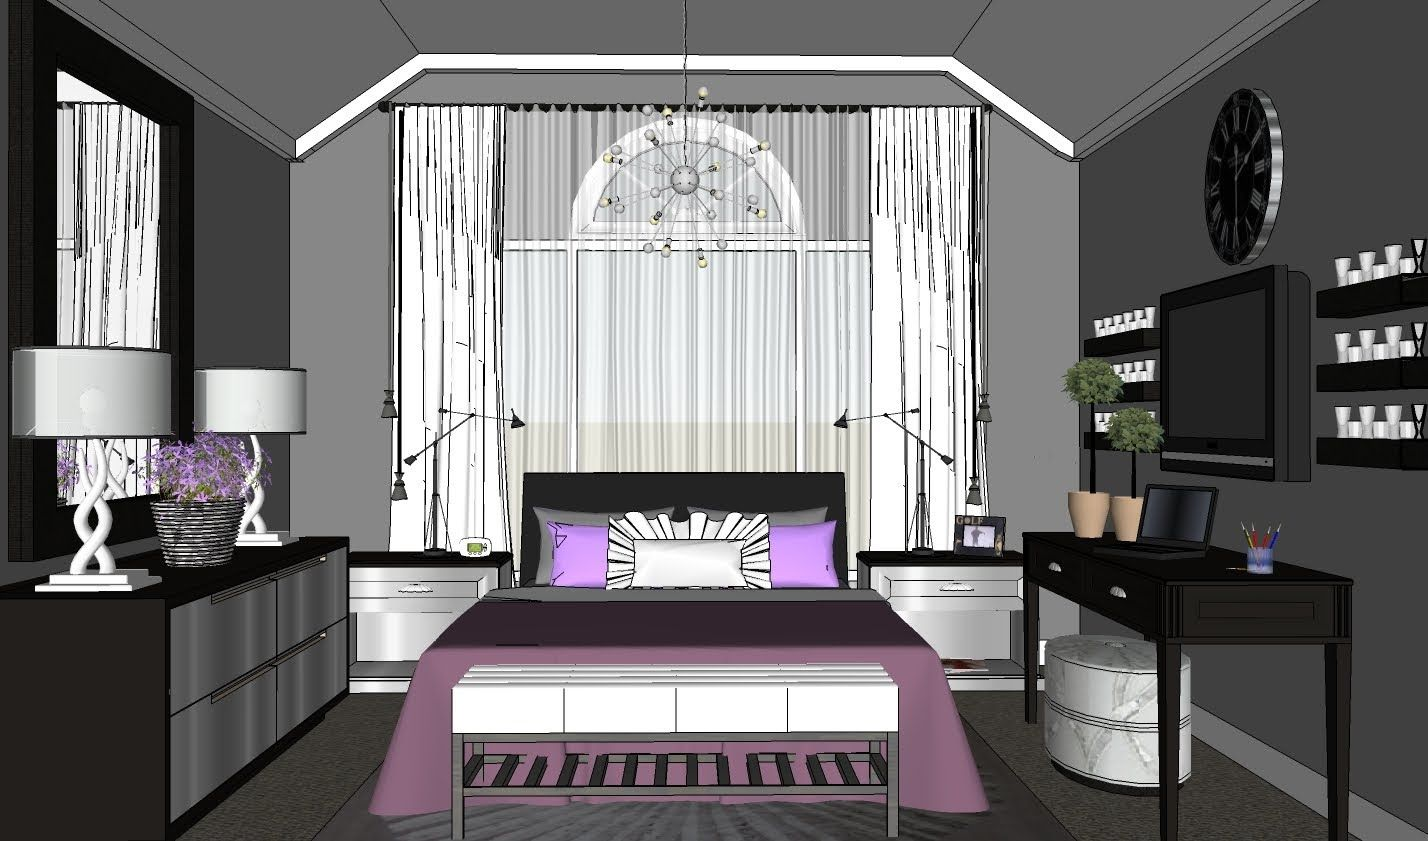 classy bedroom ideas. ROOM TOUR  16 Makeover Mondays Classy Bedroom Design ideas BEDROOM WITH THREE FOCAL WALLS